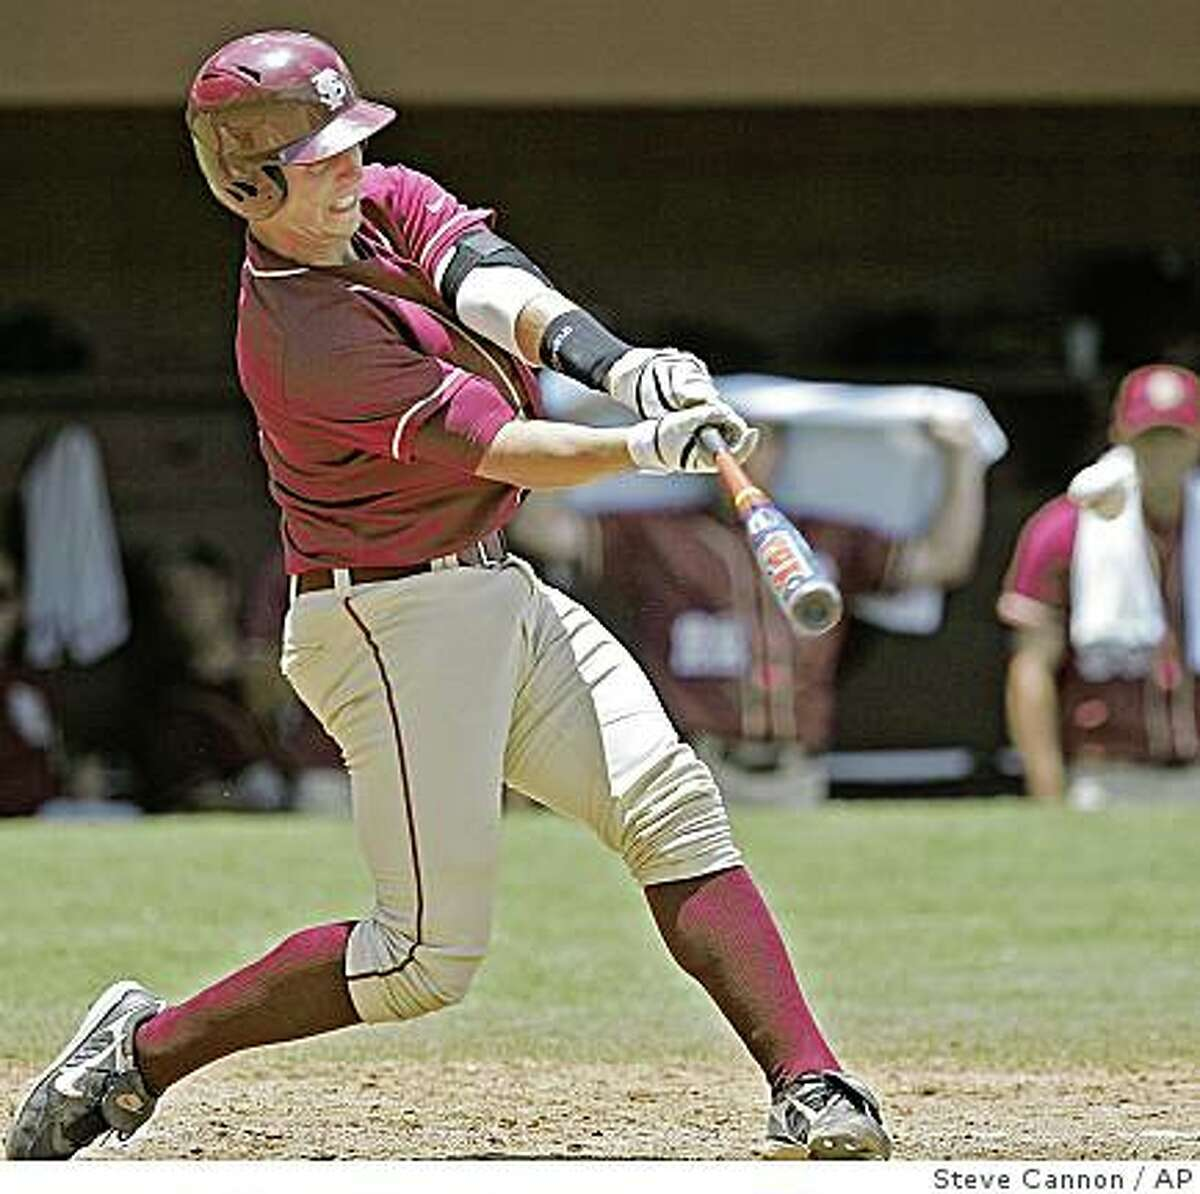 Florida State's Buster Posey connects for a grand slam in the third inning of a Tallahassee regional baseball game against Bucknell on Sunday, June 1, 2008 in Tallahassee, Fla. Florida State beat Bucknell 24-9.